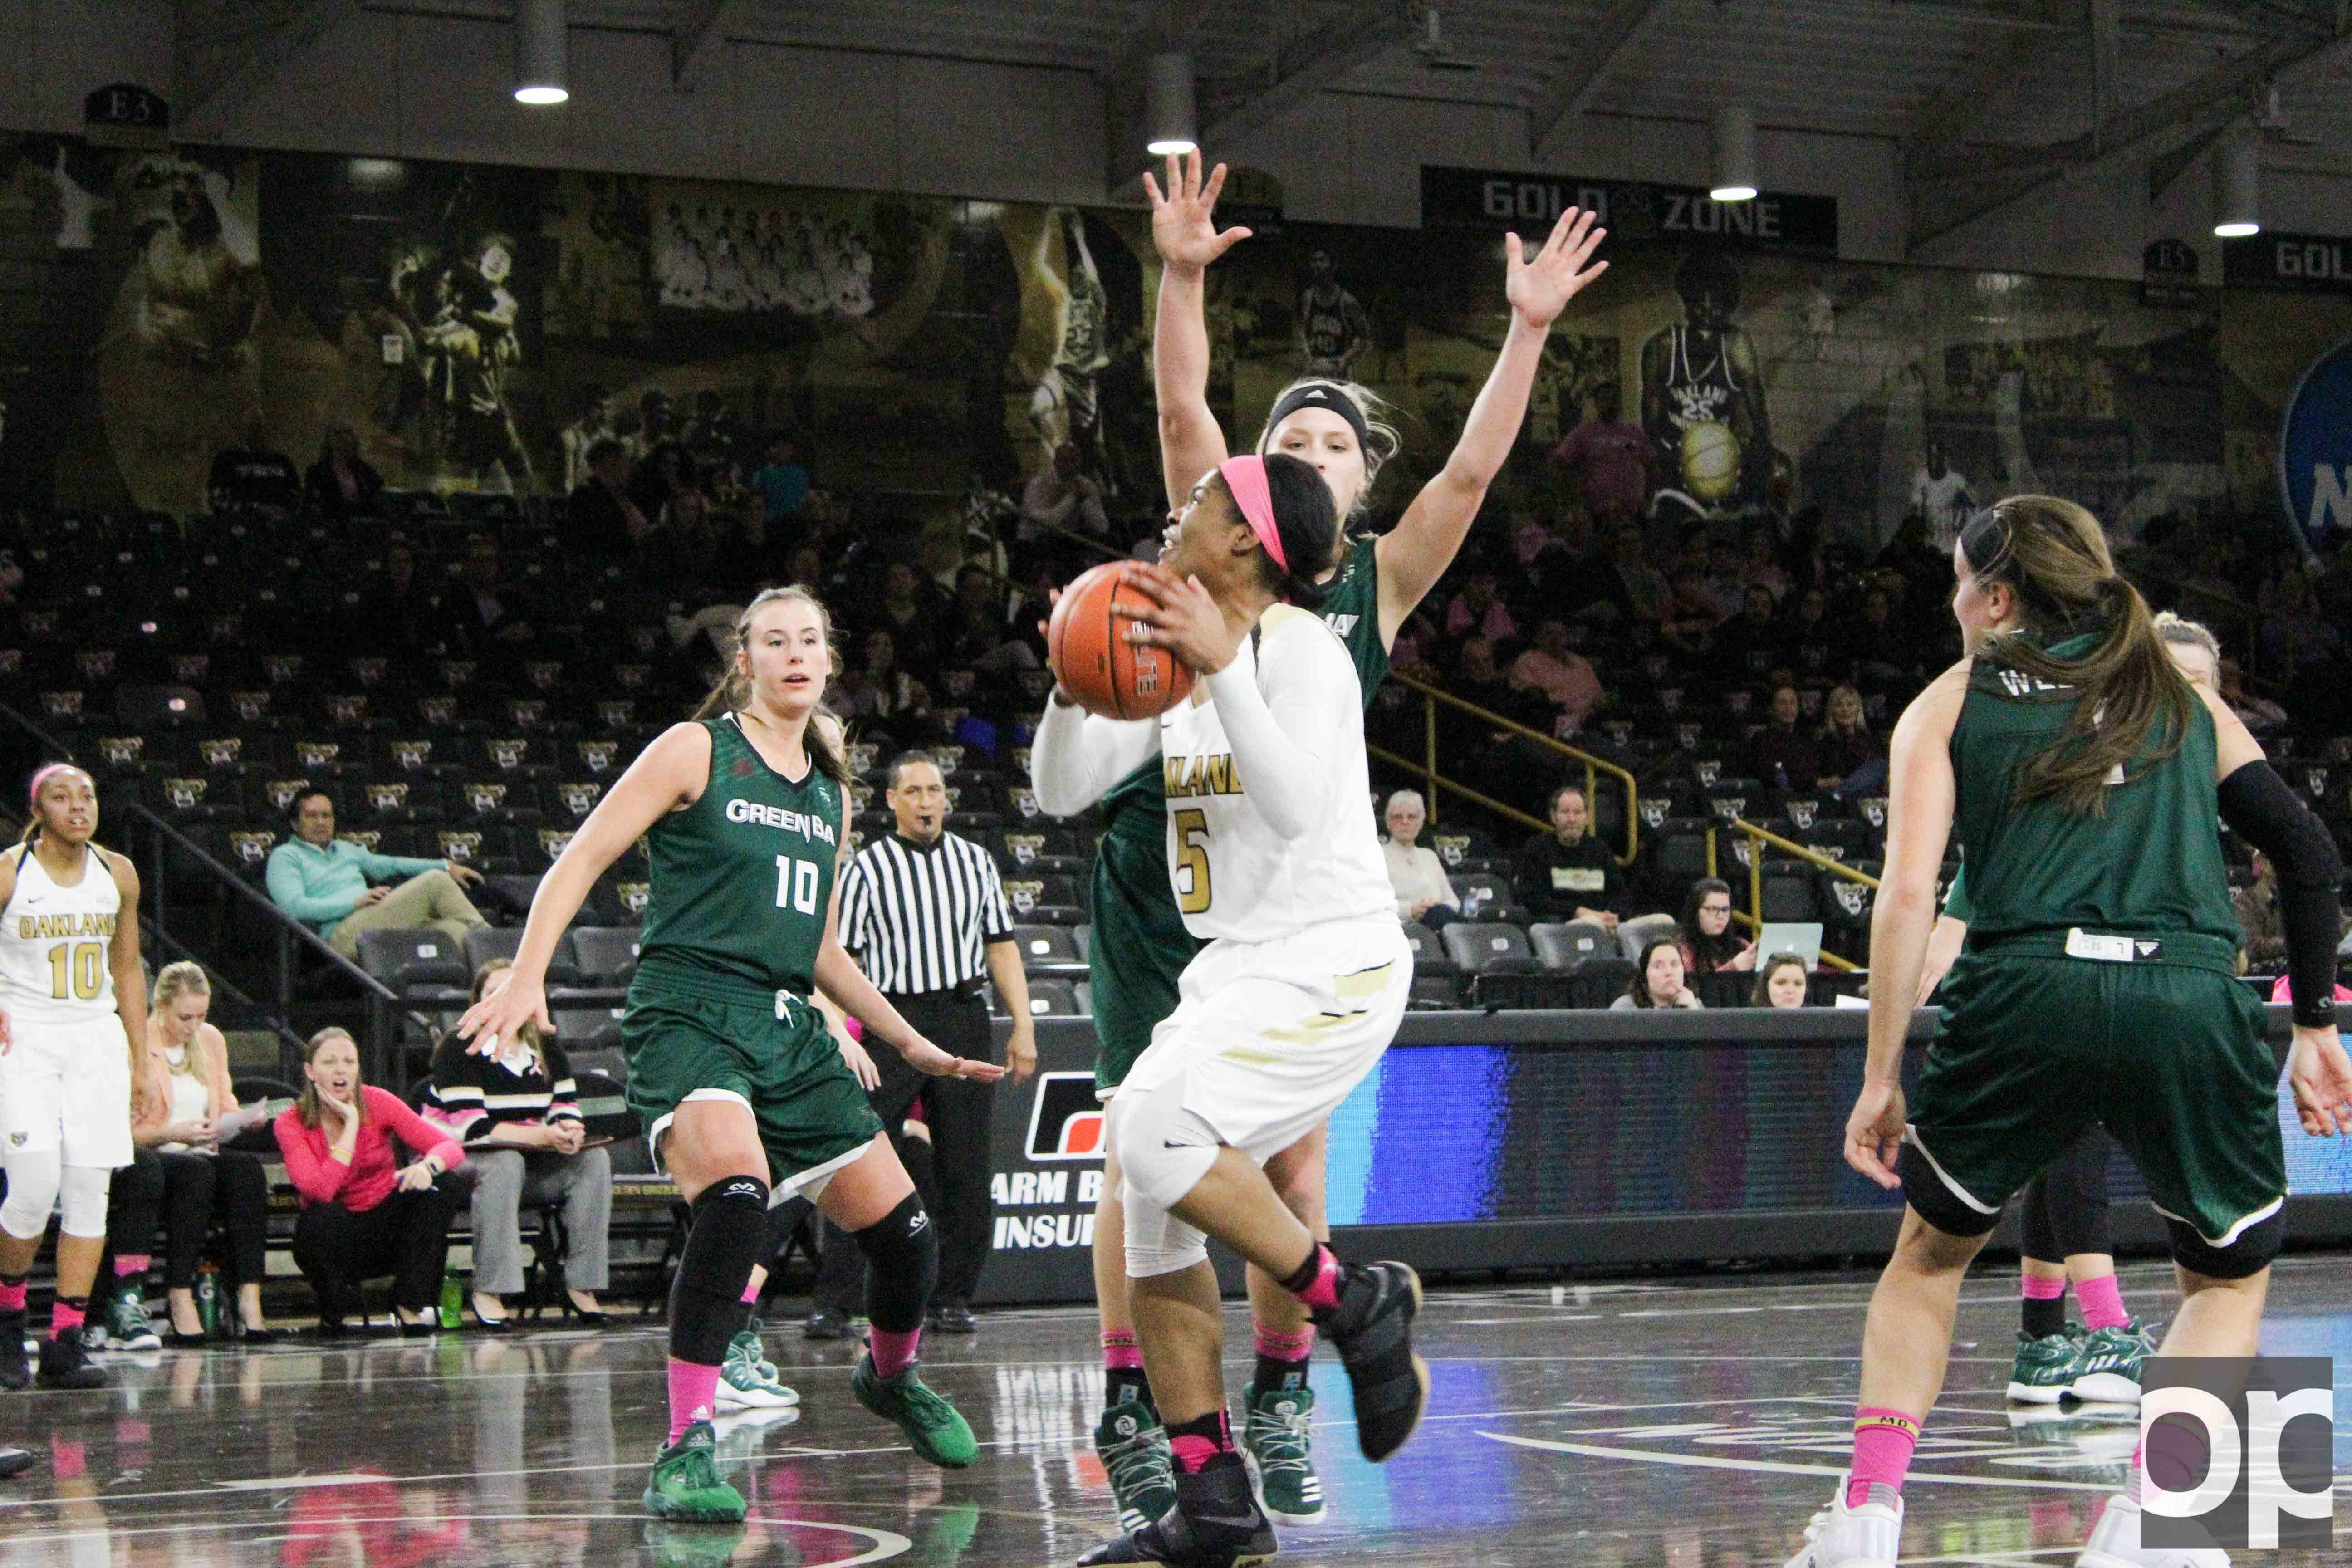 Sha'Keya Graves stole an inbound pass from Green Bay and scored the final layup earning the Golden Grizzlies a win over #21 Green Bay on Thursday, Feb. 2 at the O'rena.